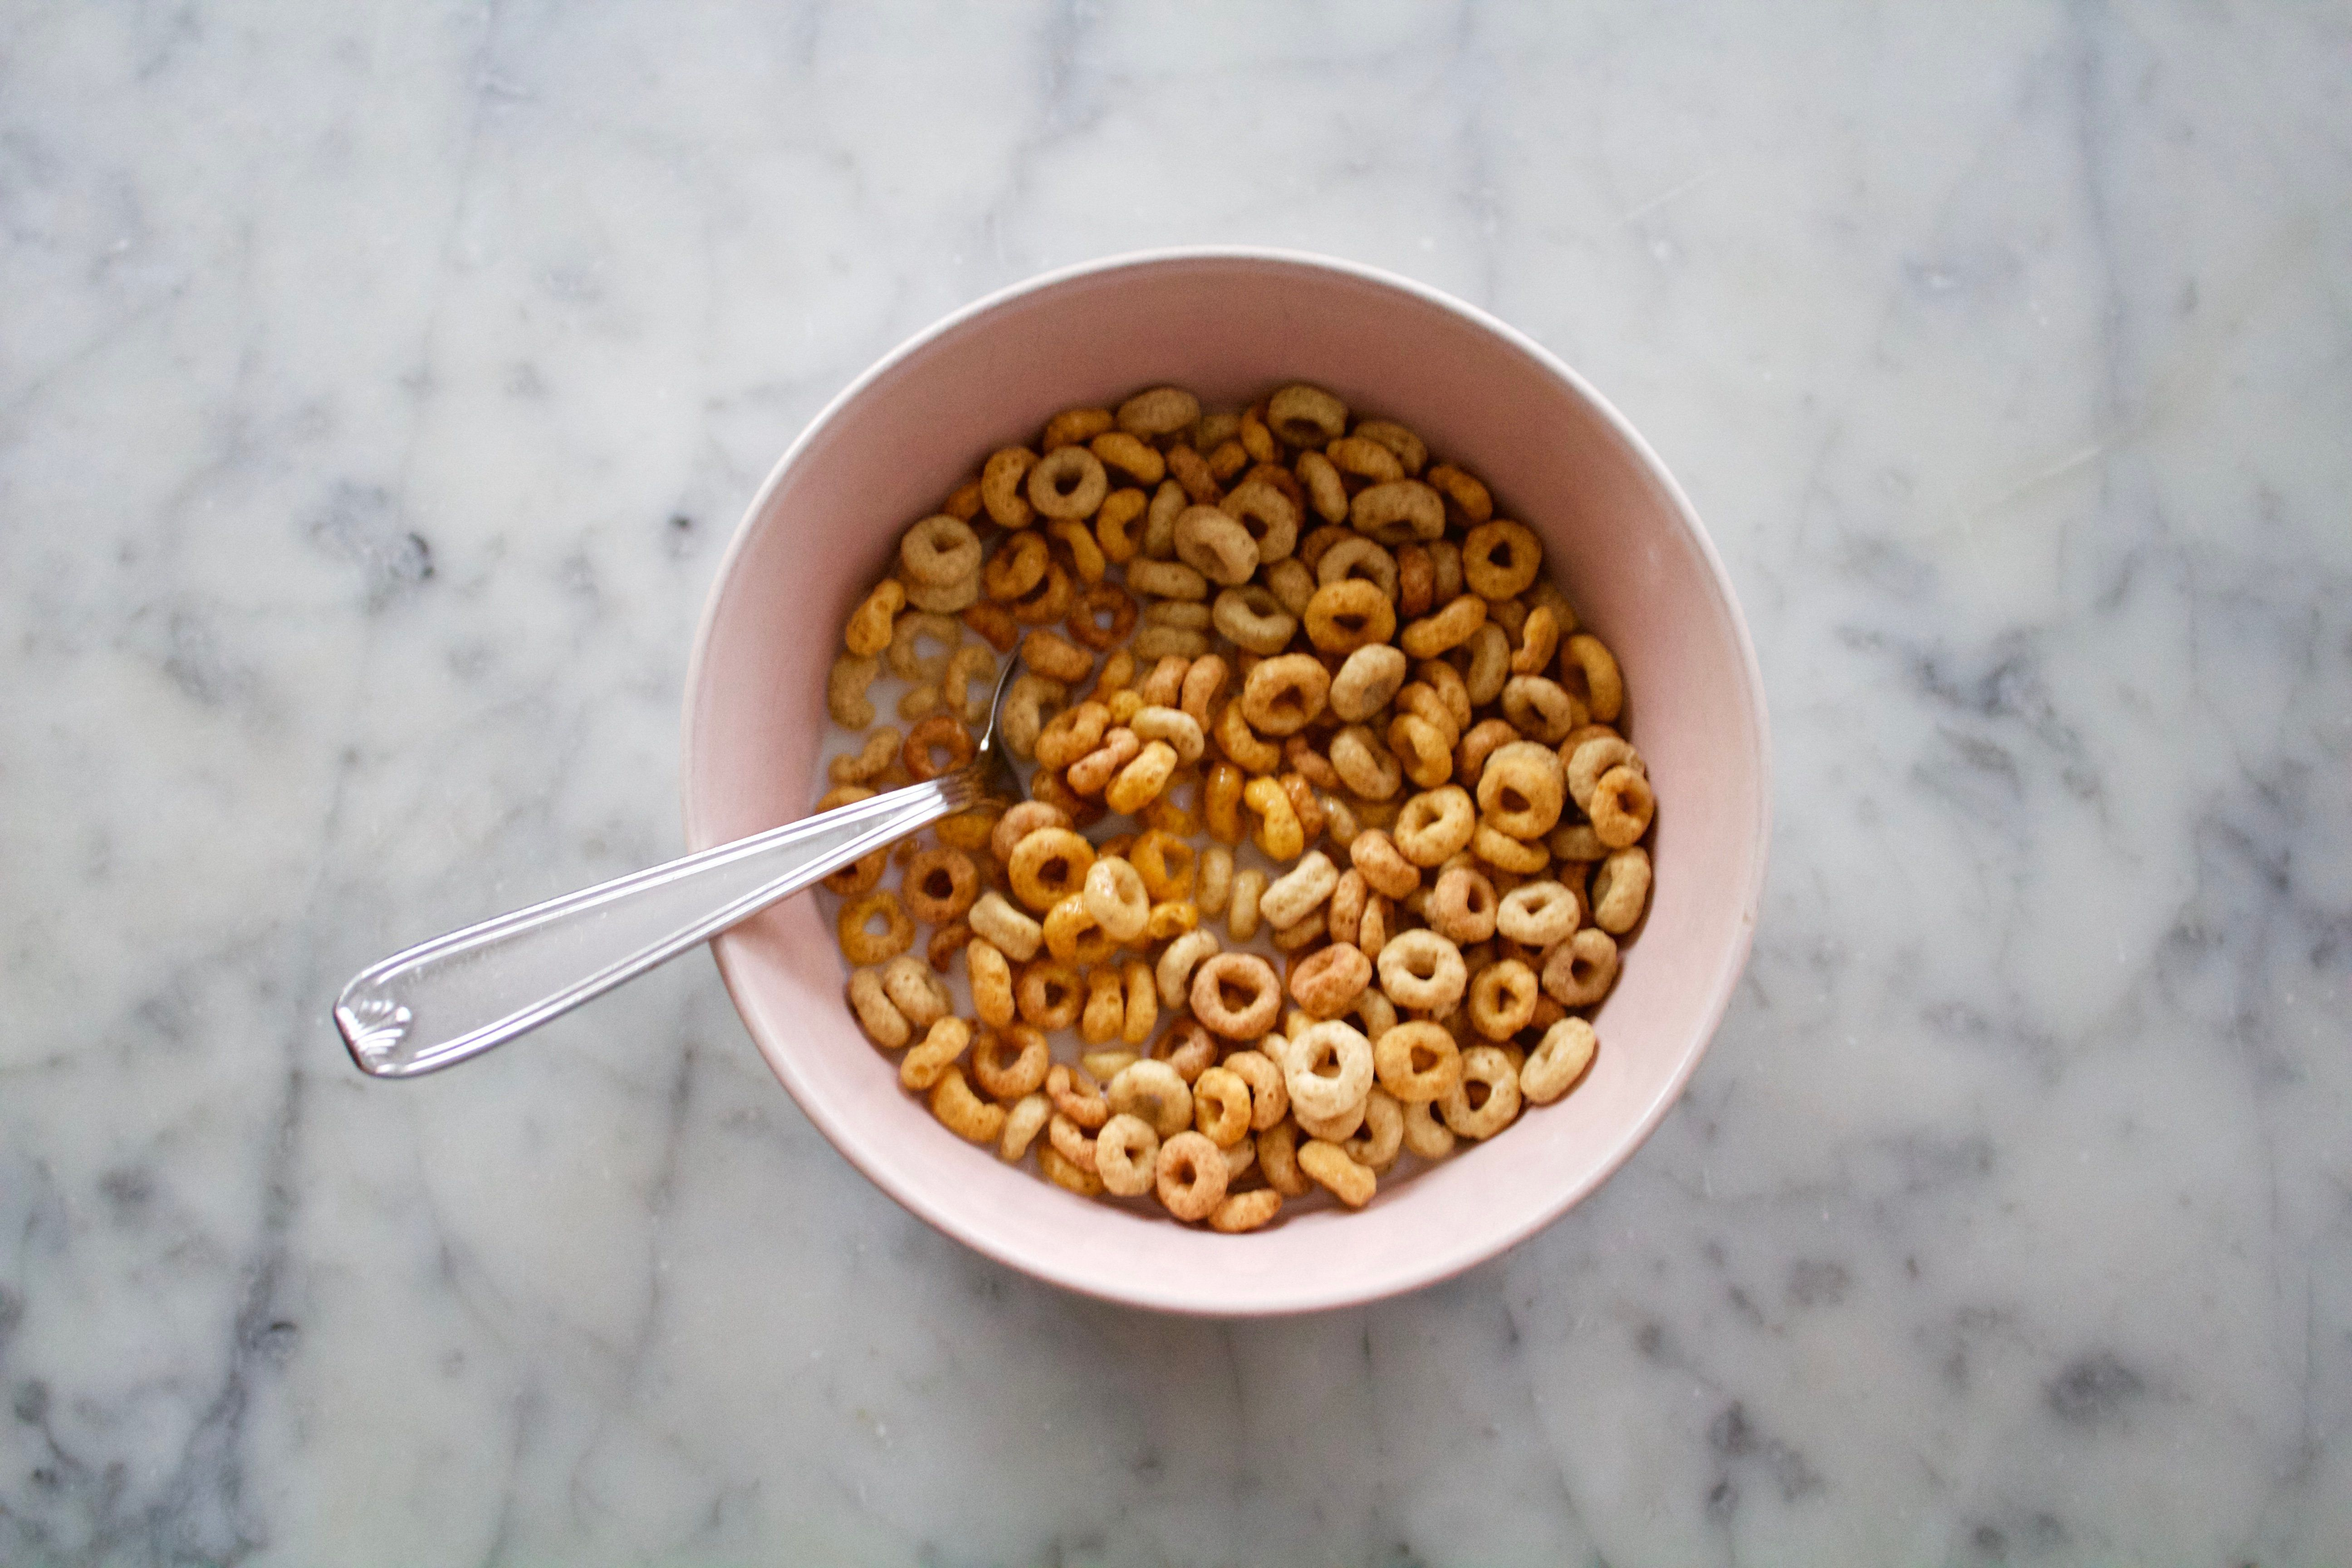 Ultra-Processed Foods Including Cereal Could Increase Cancer Risk, Says